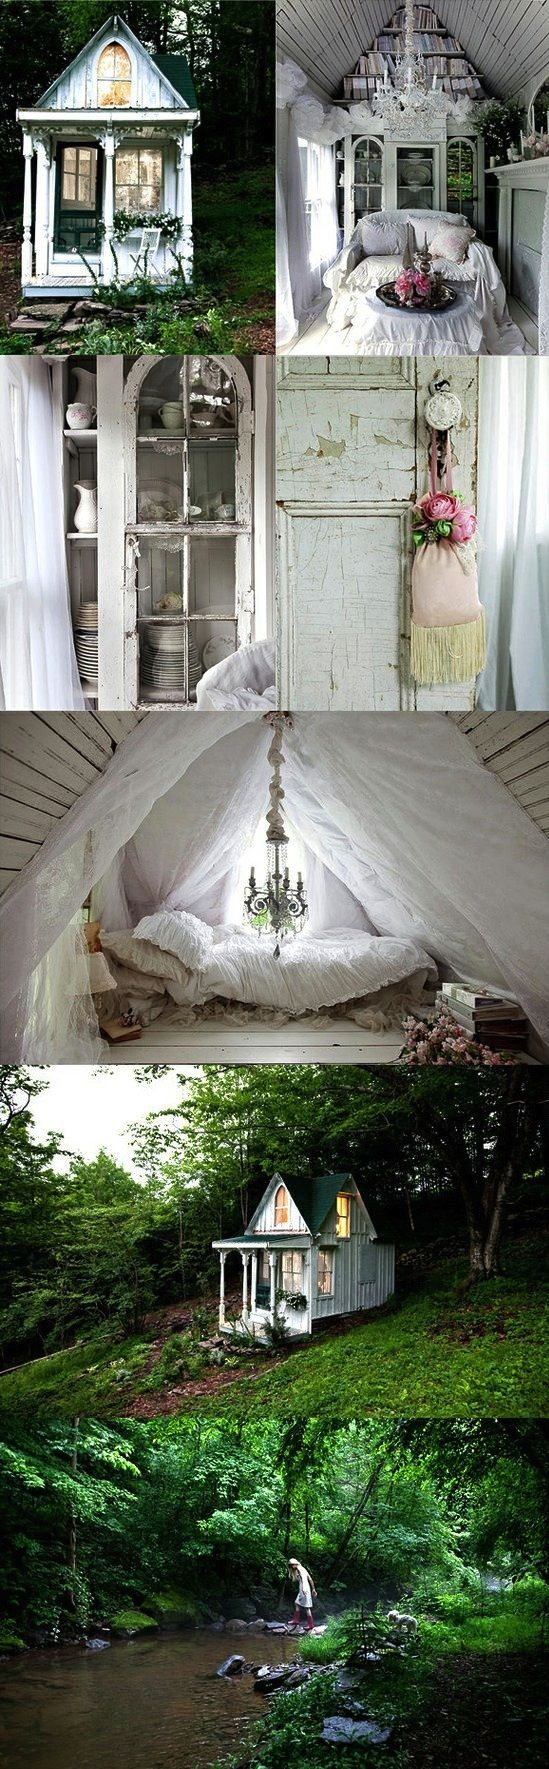 20 Wendy Houses for the Peter Pan in You | Messy Nessy Chic Messy Nessy Chic